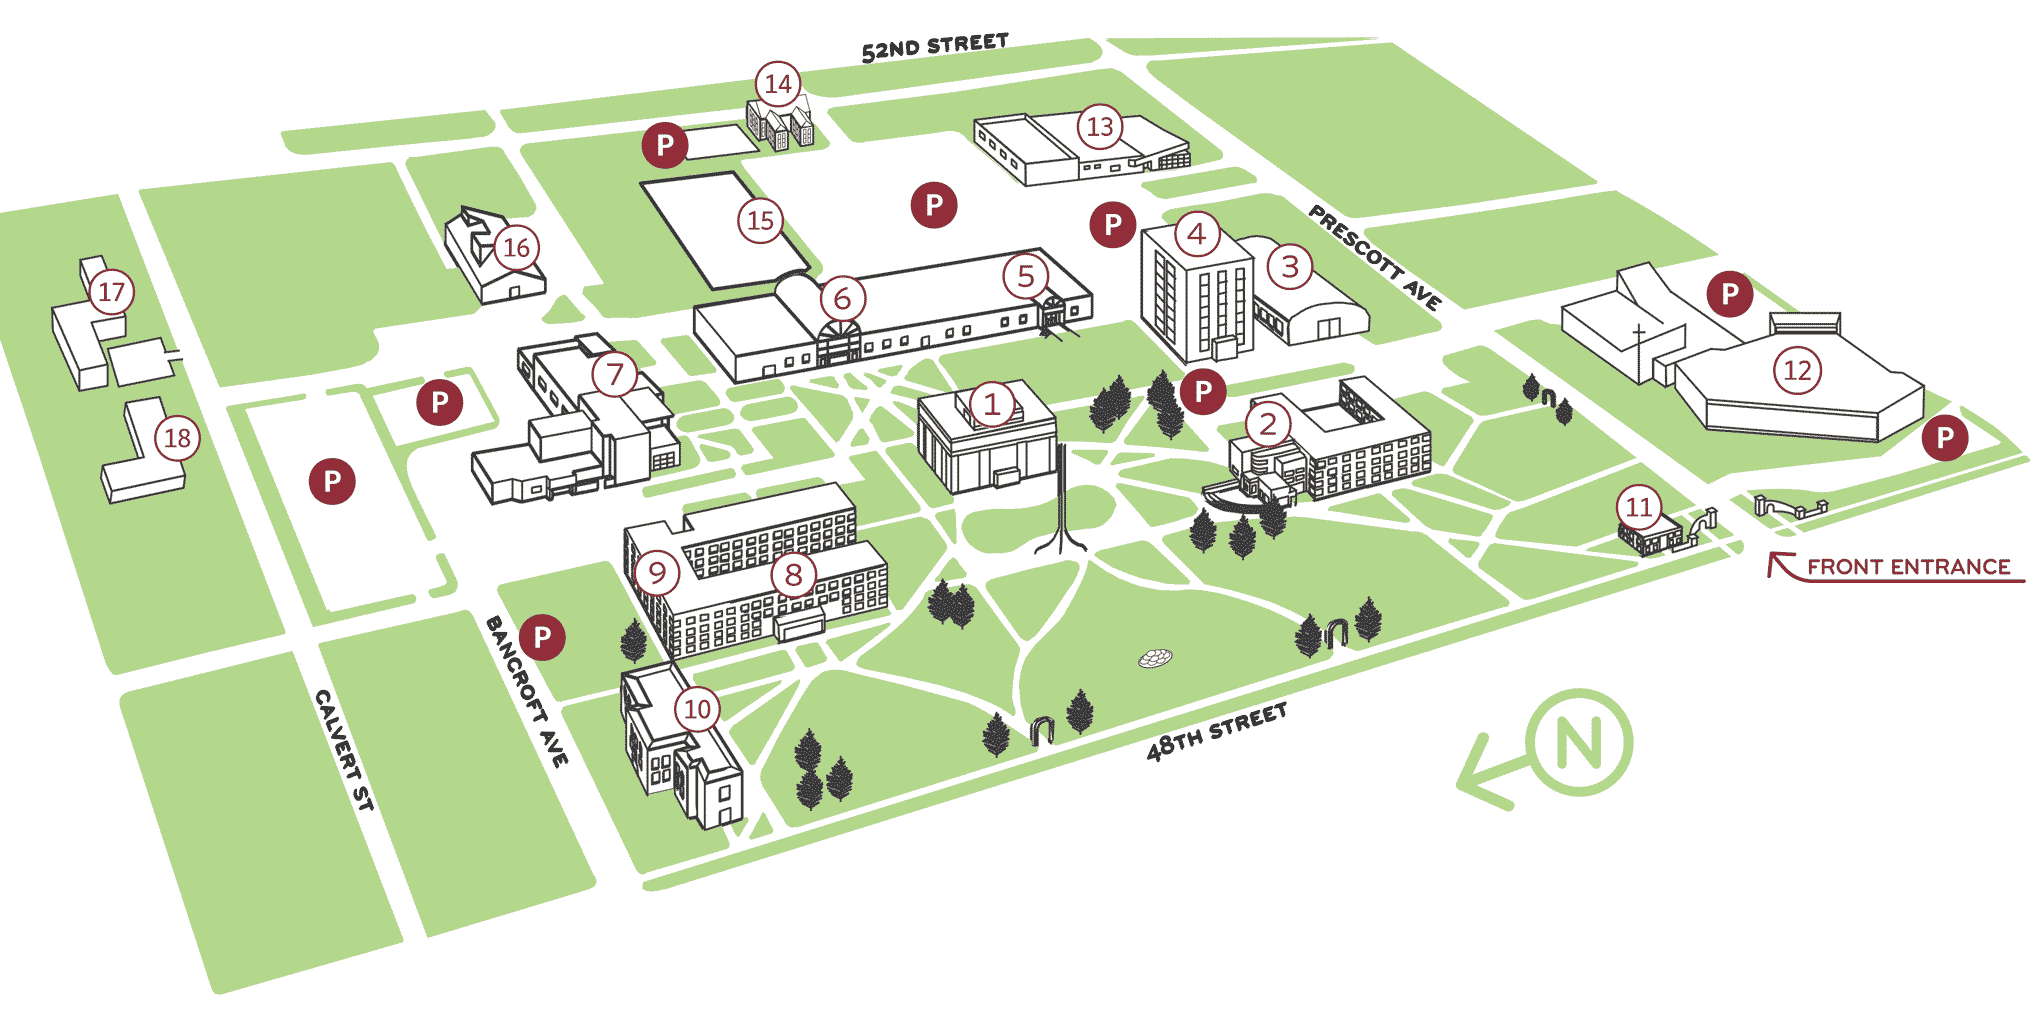 Illustration of campus buildings with numbers.